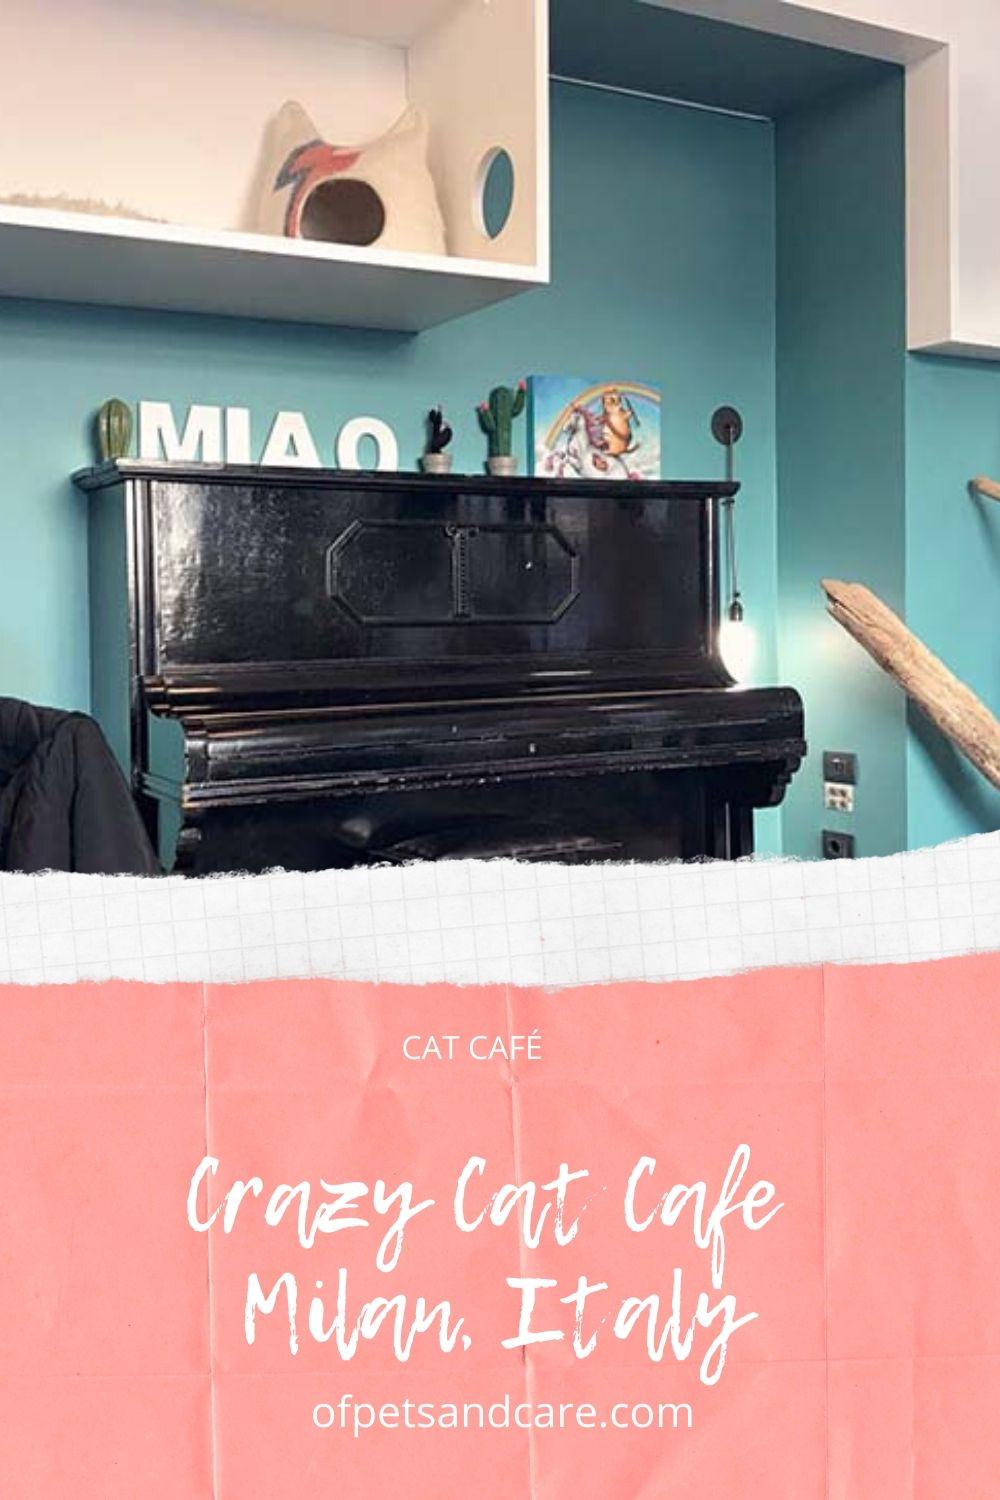 Crazy Cat Cafe in Milan